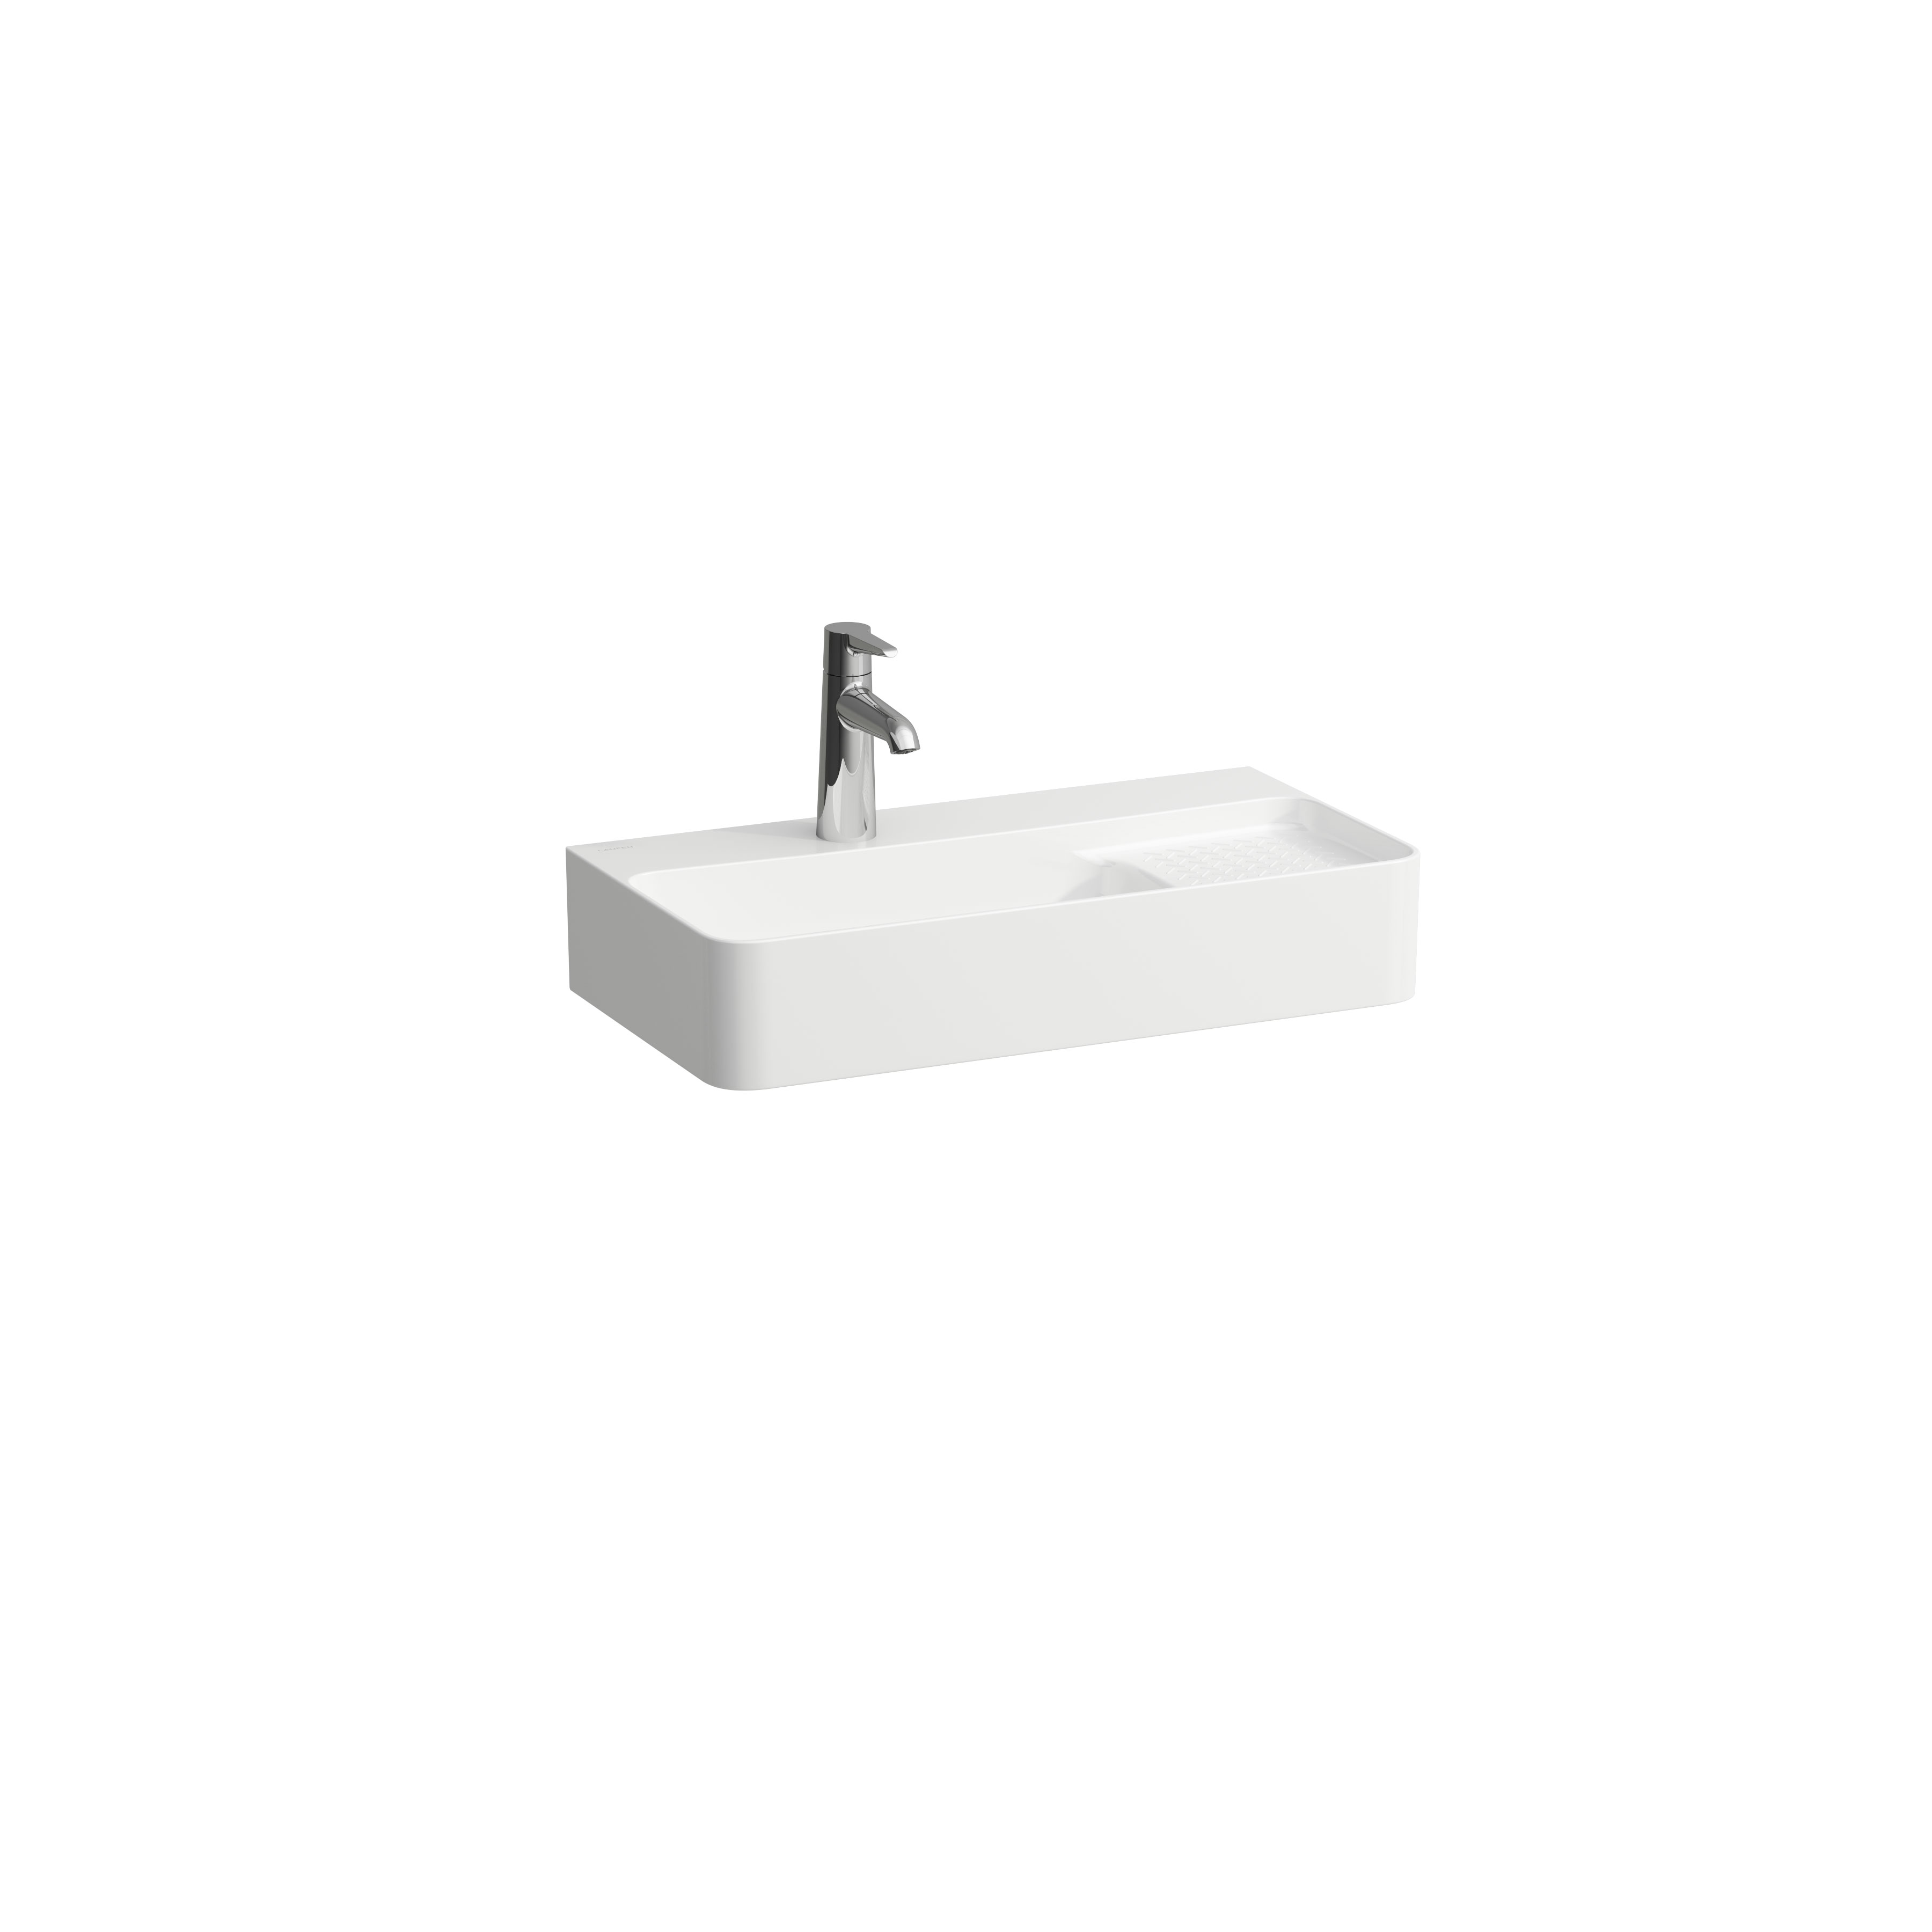 click on Compact Basin with Semi-Wet Area image to enlarge